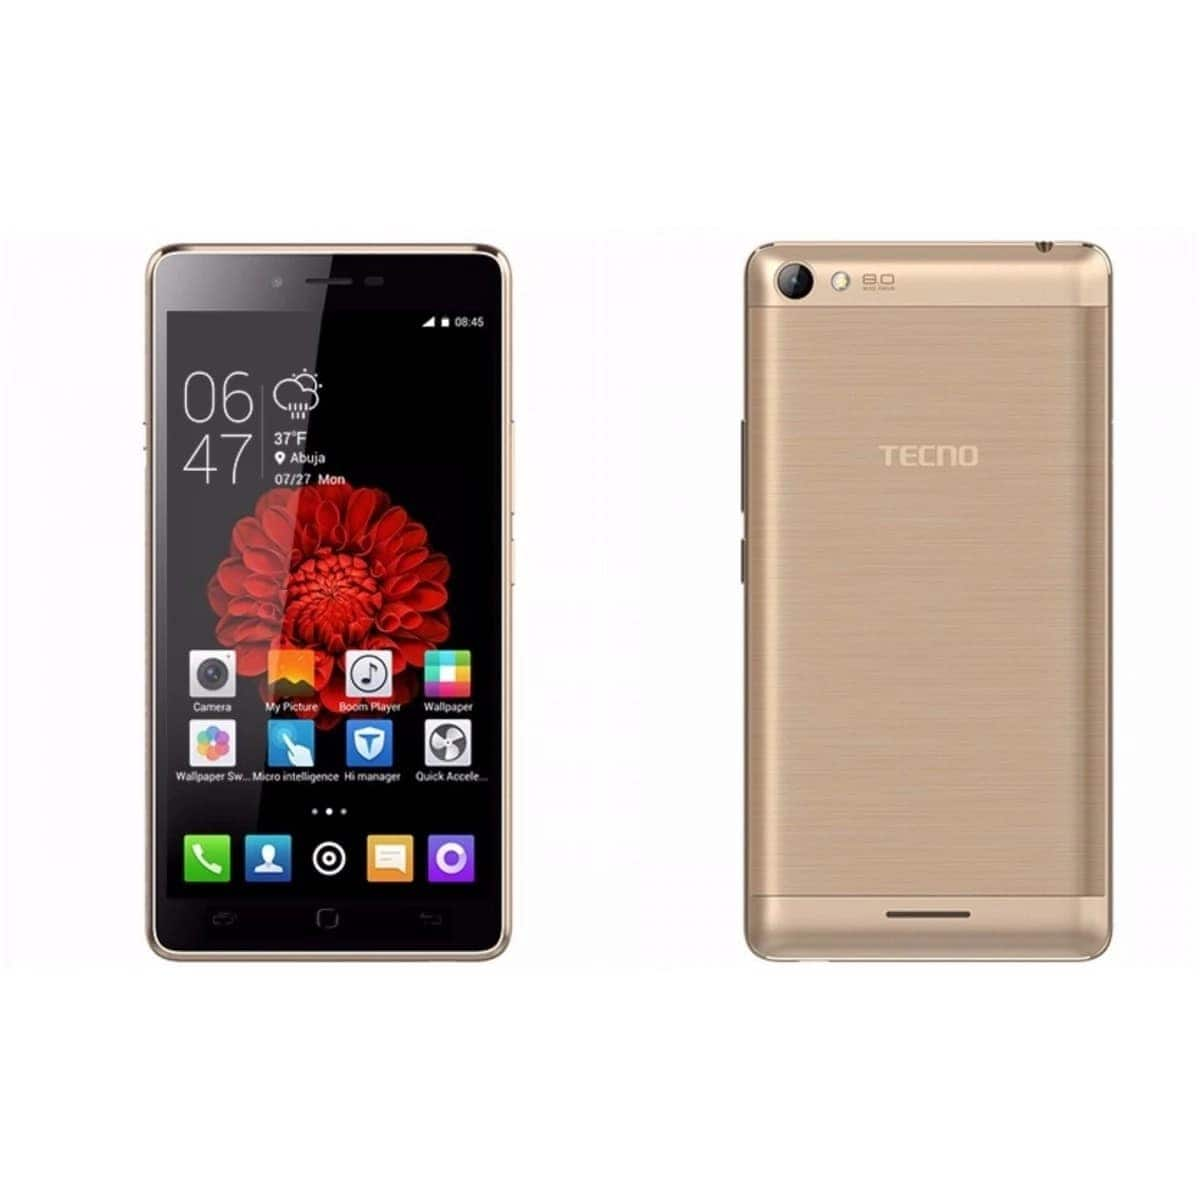 tecno l8 lite price tecno l8 specifications tecno l8 lite price in kenya